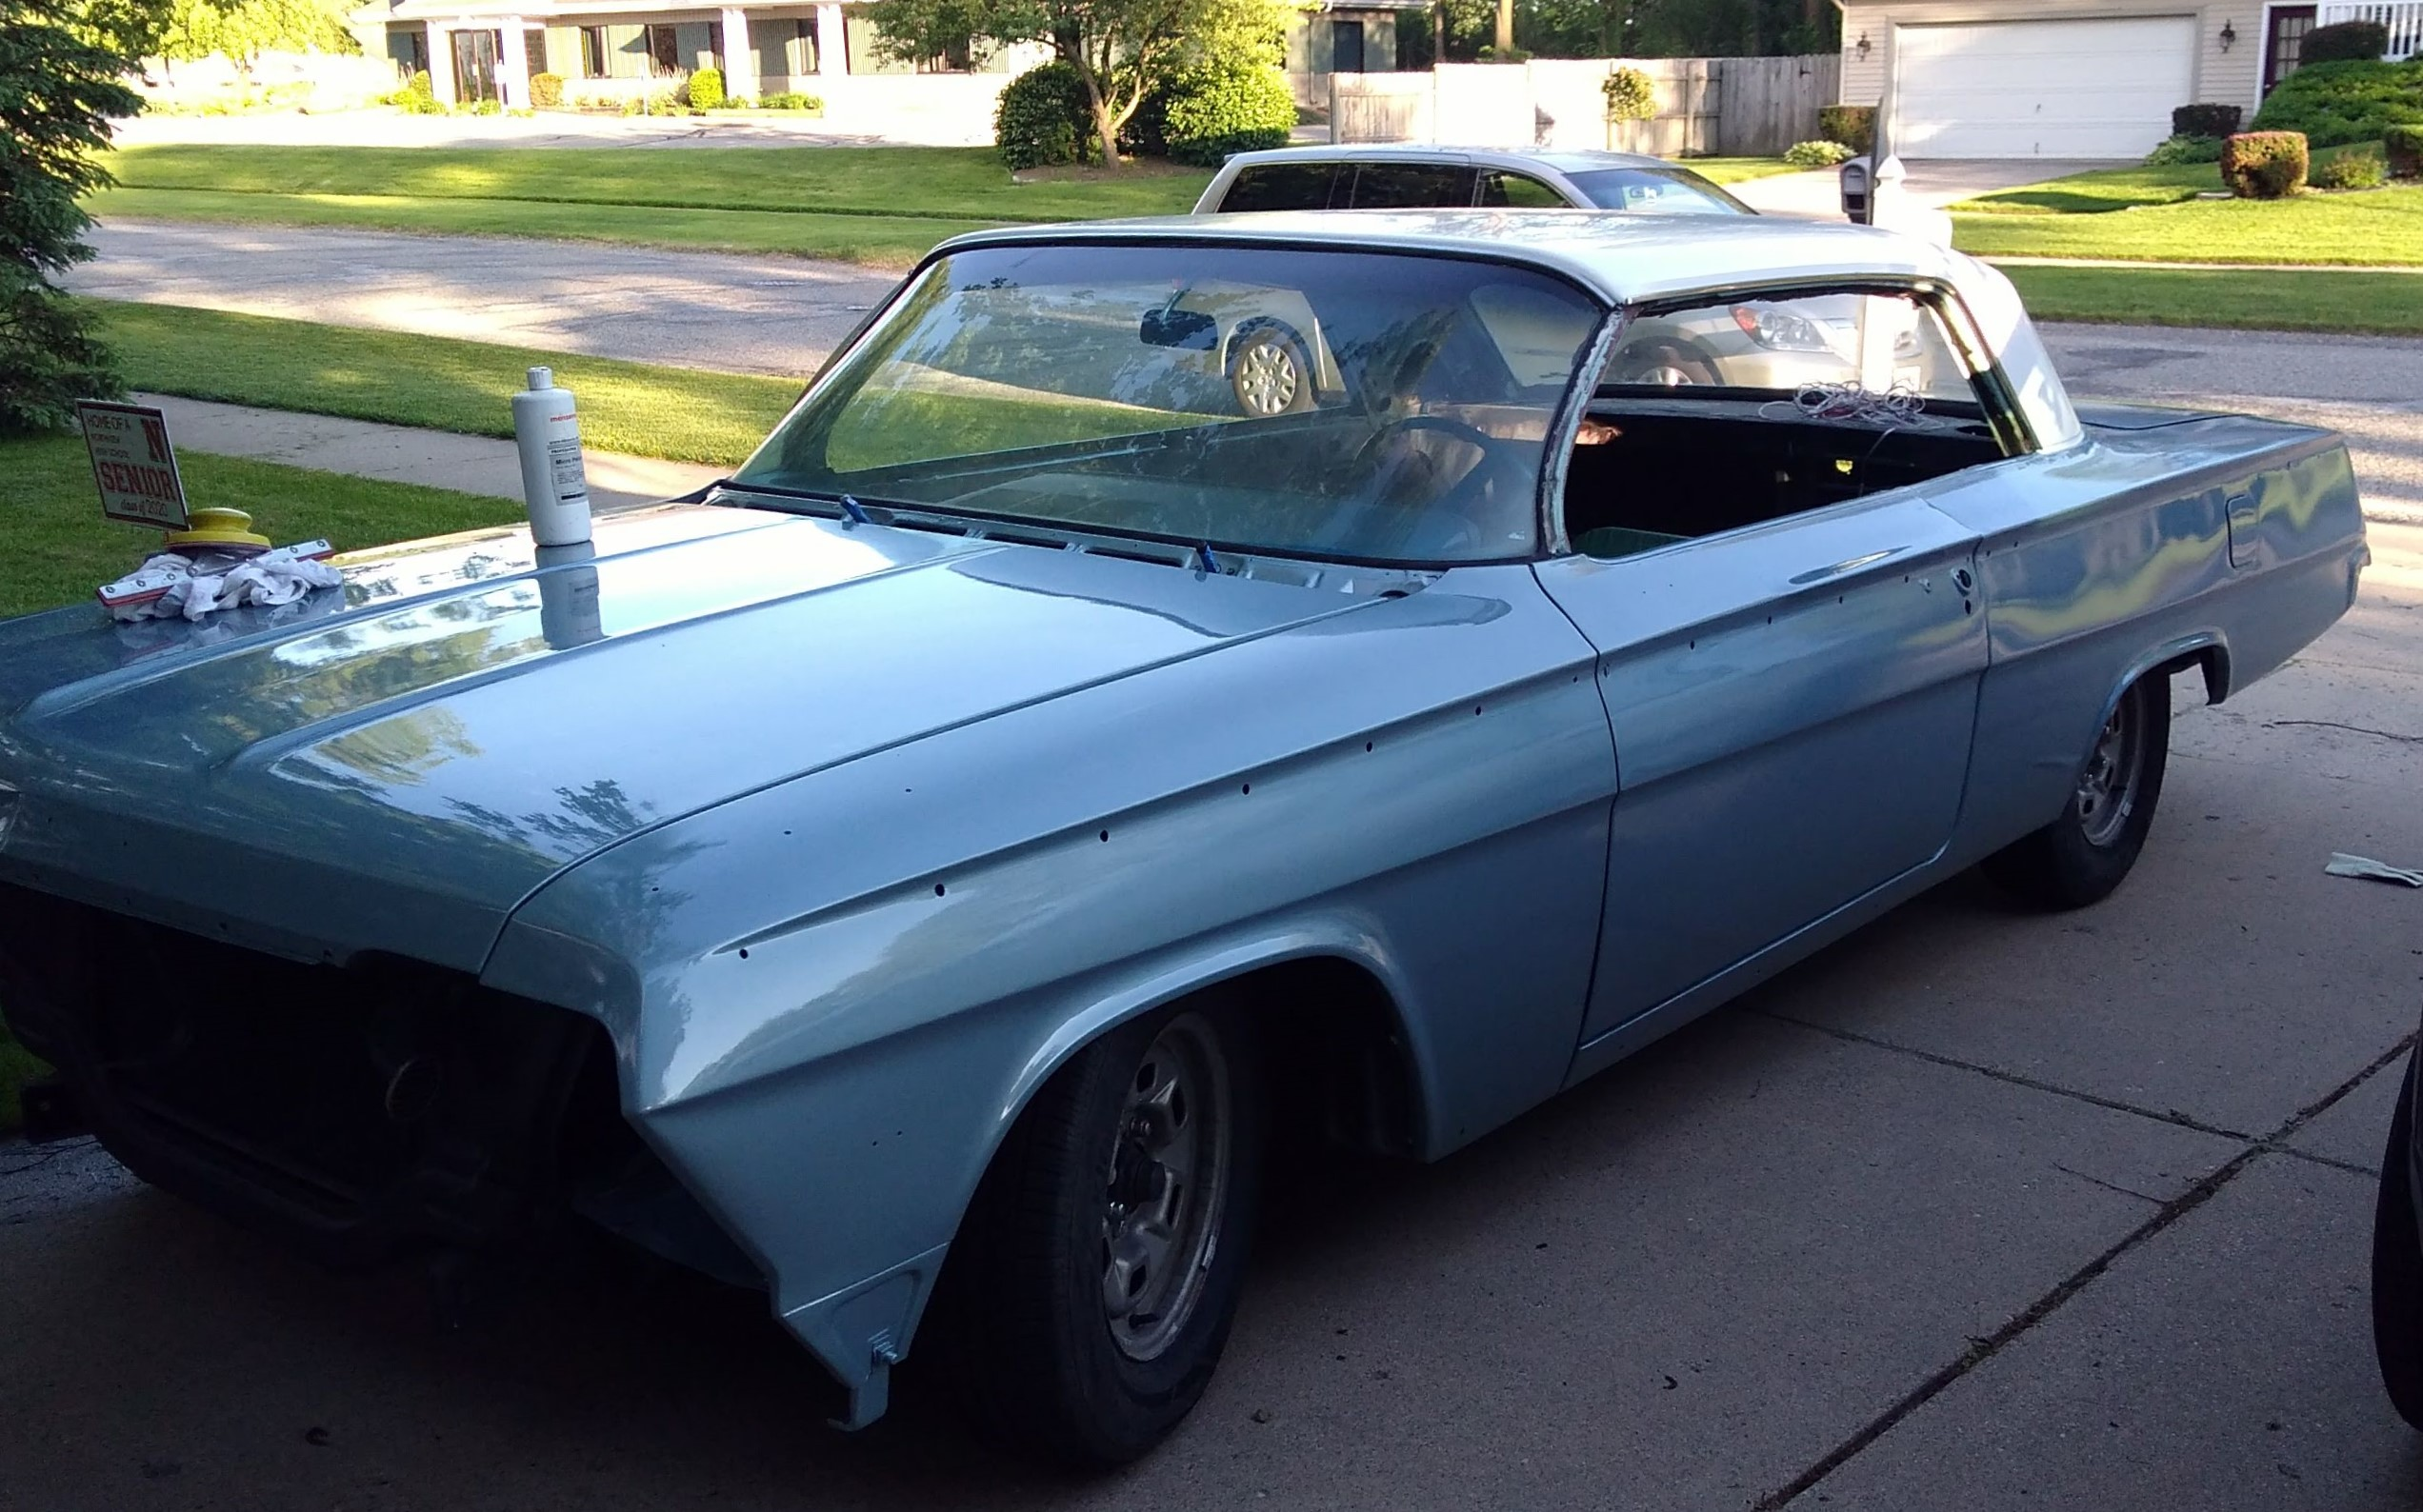 Jason Prince - 1962 Chevrolet Impala - Almost done